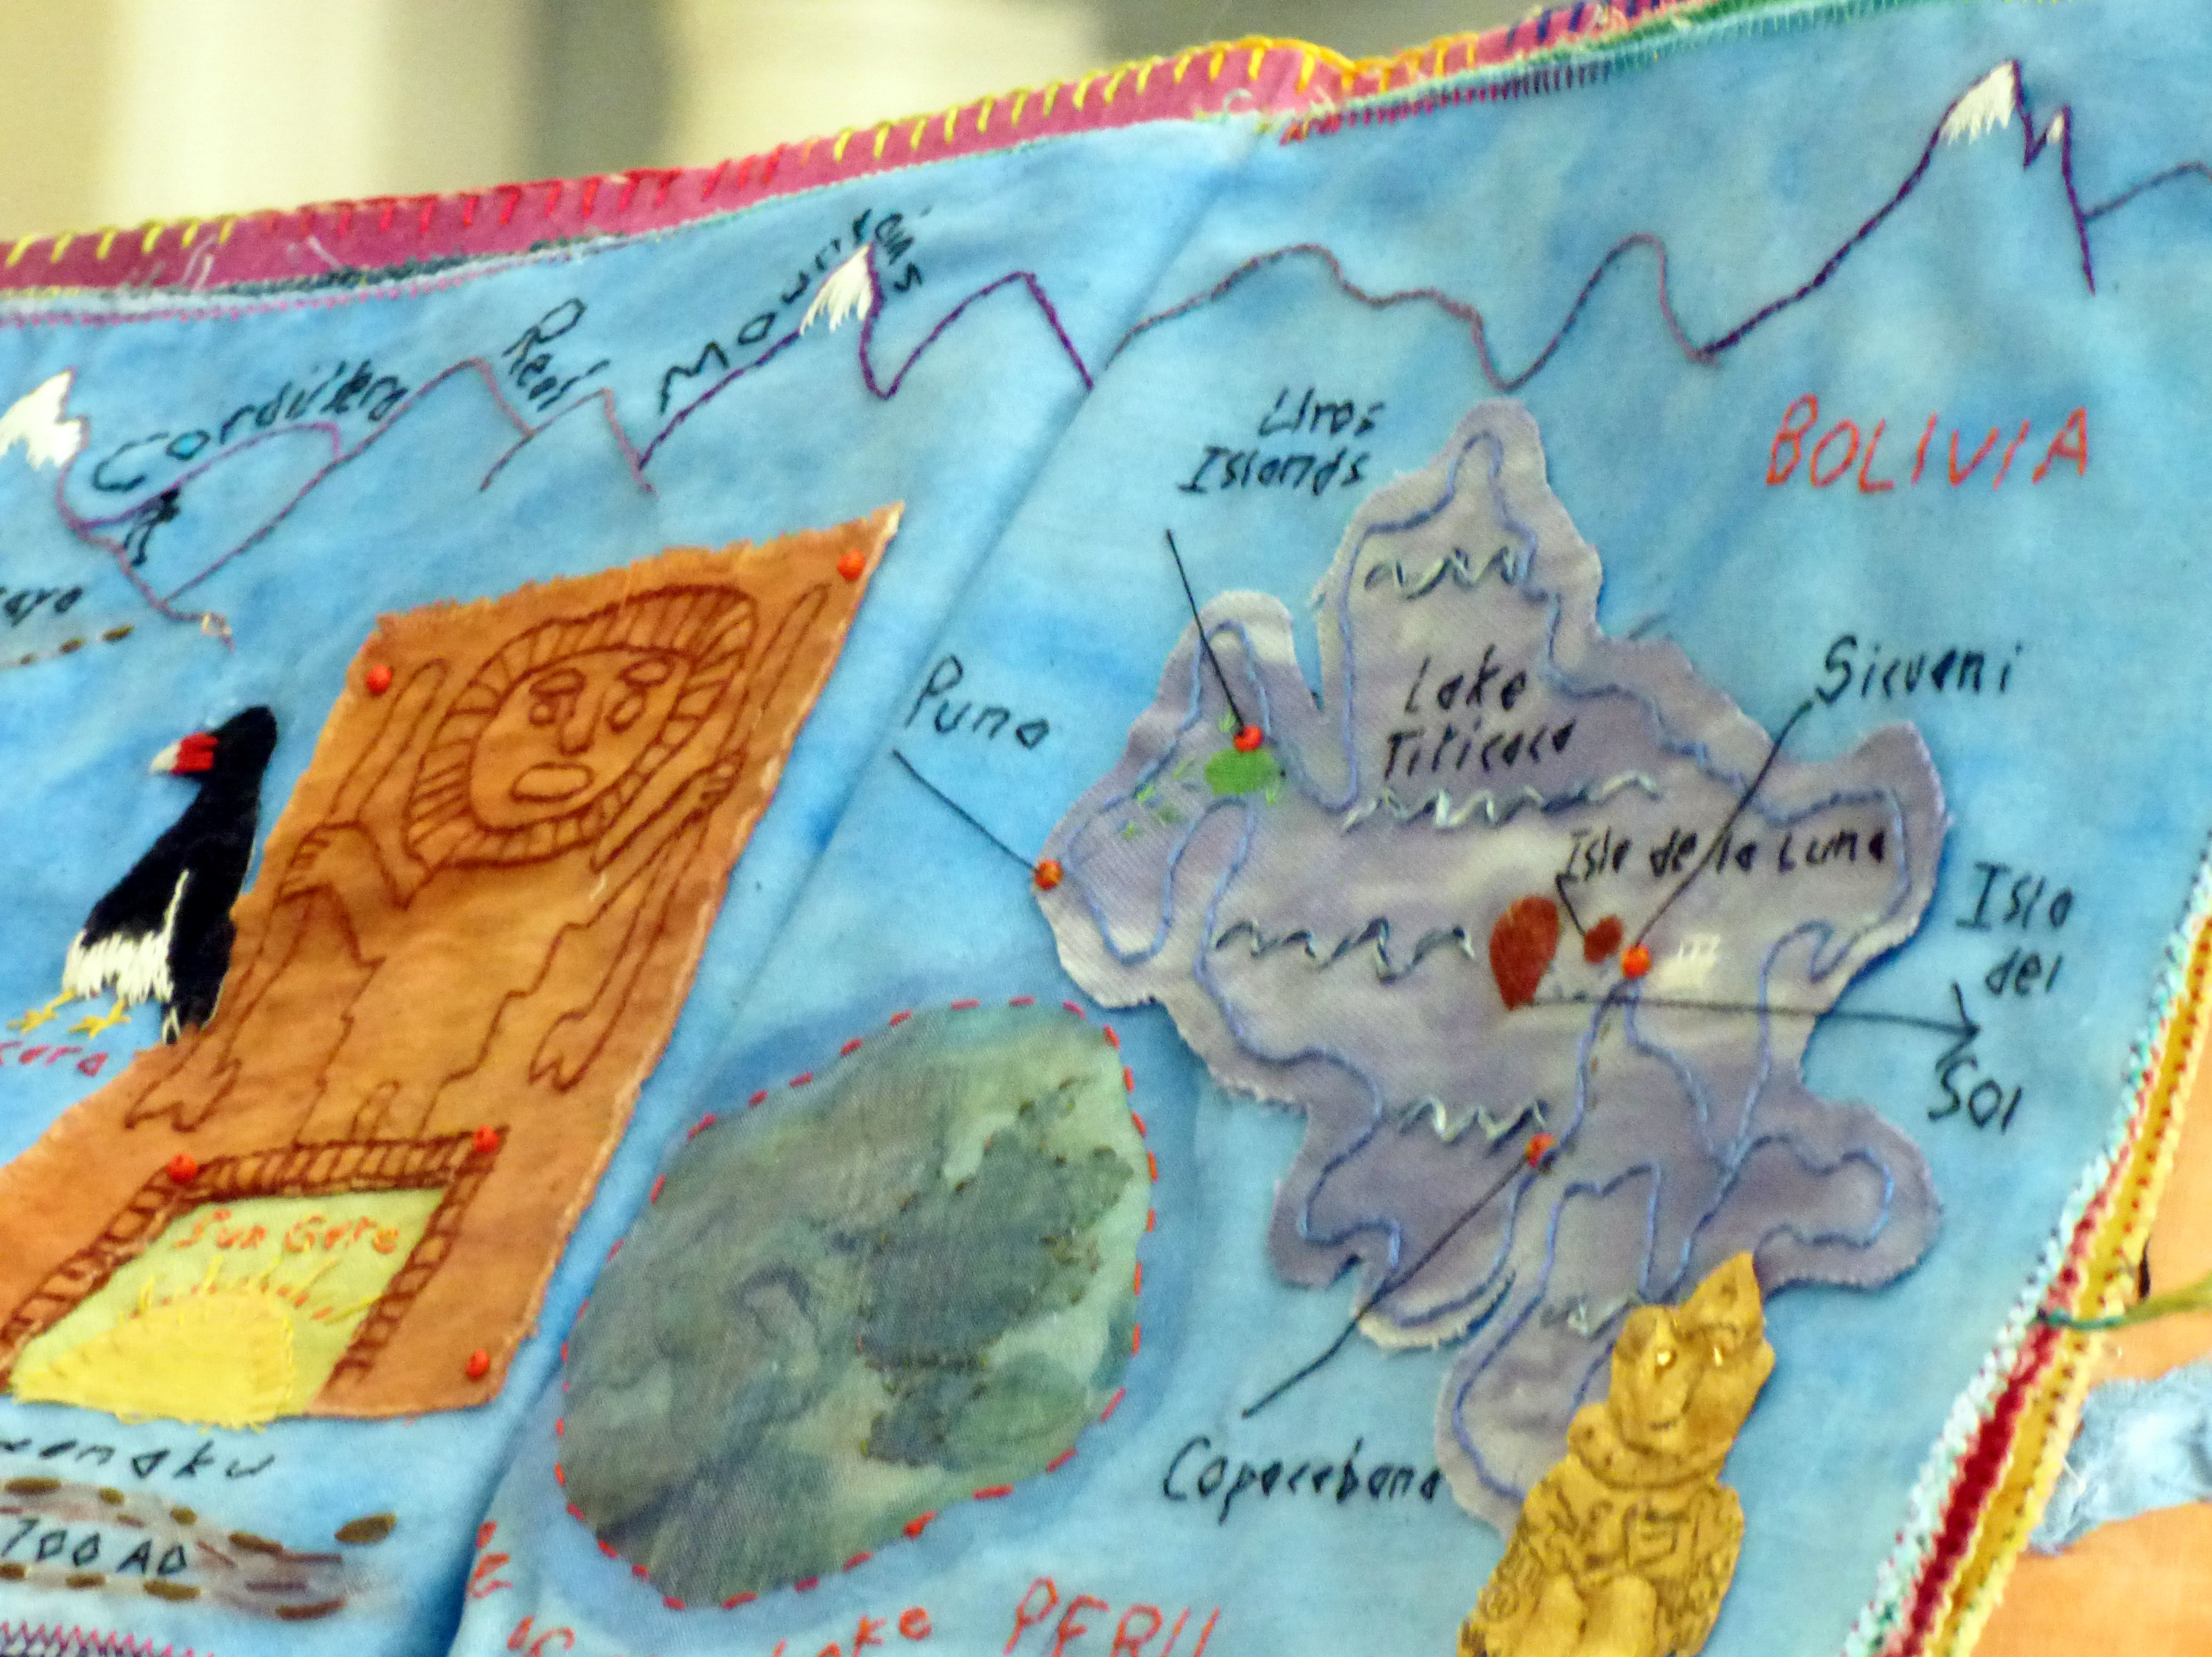 detail of textile journal by Chris Harris on a trip to South America